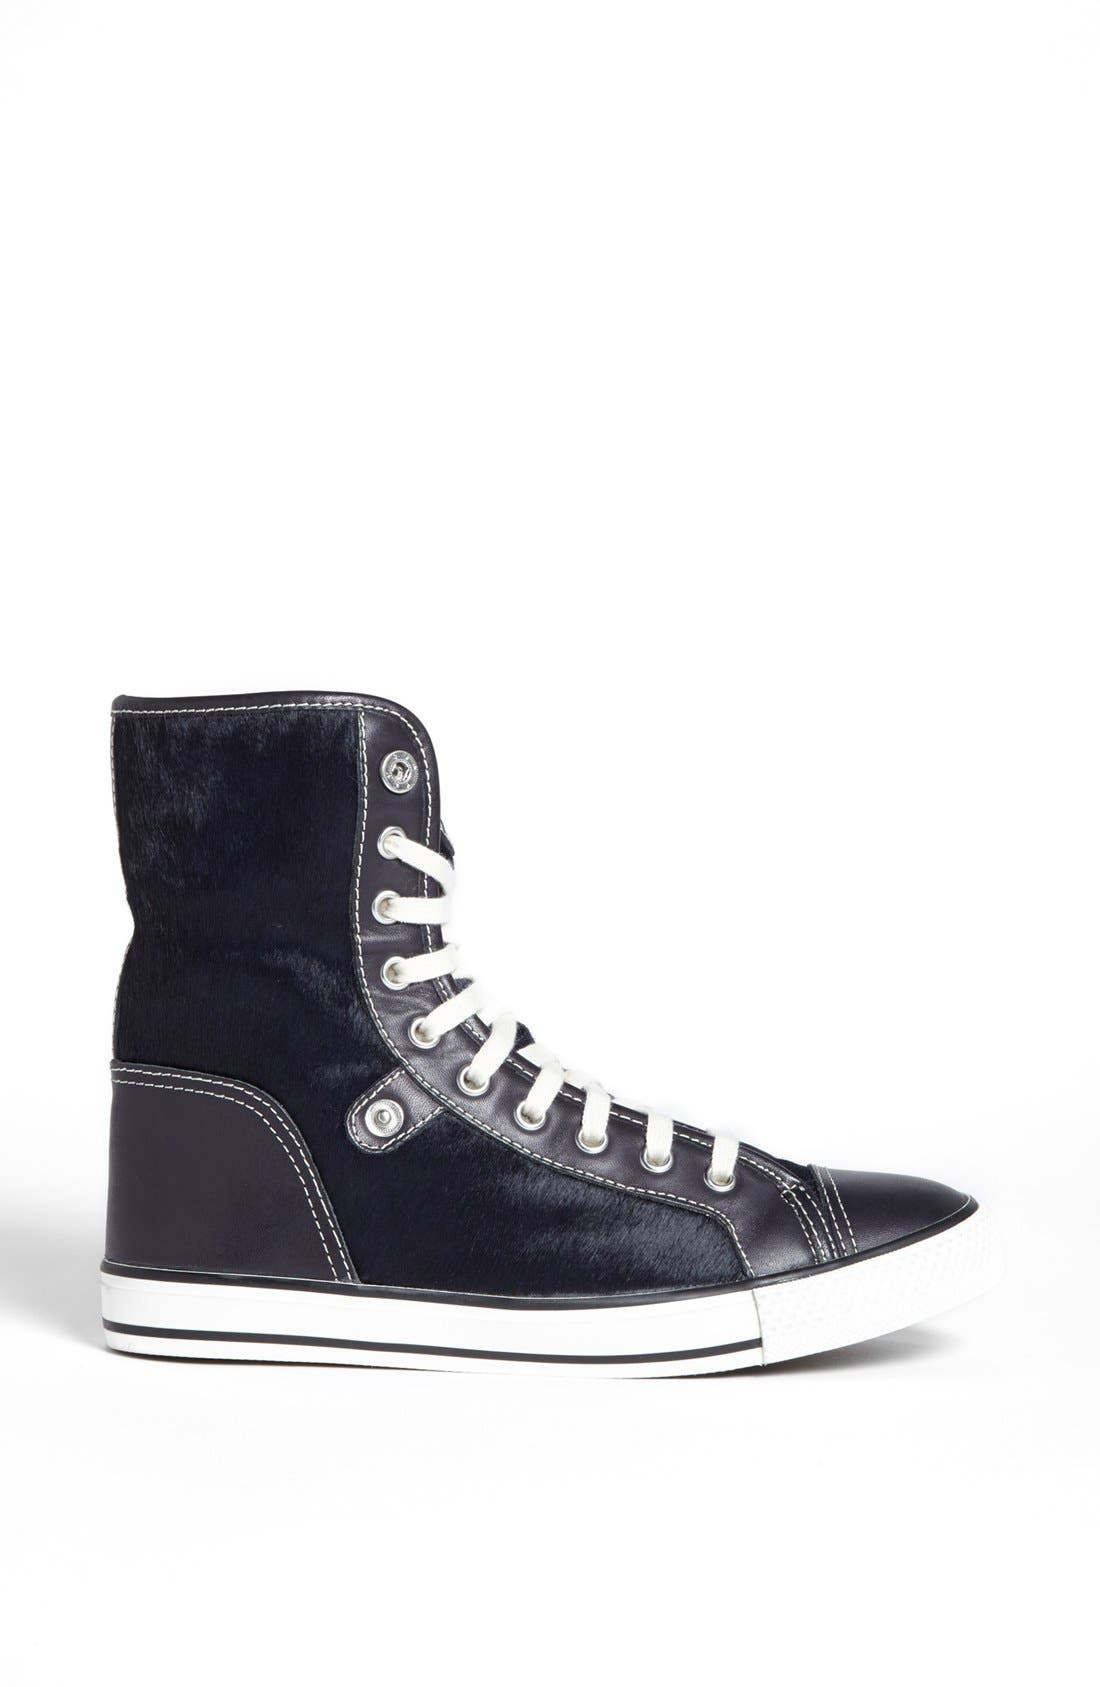 Alternate Image 3  - Tory Burch 'Benjamin' High Top Sneaker